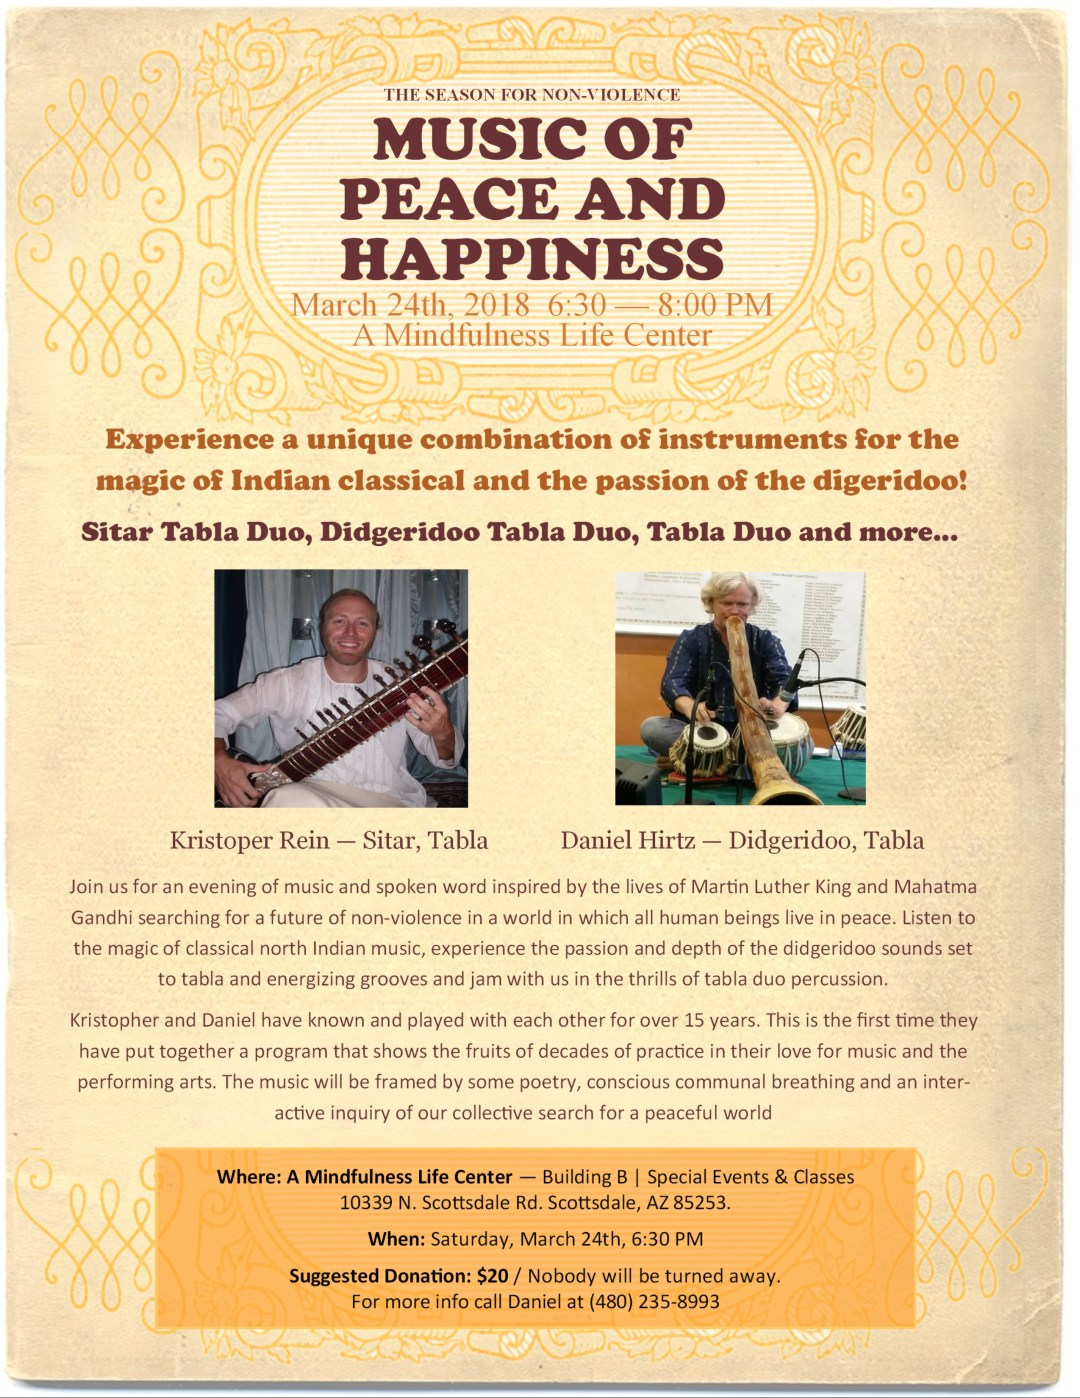 The Season for Non-Violence - Music for Peace and Happiness